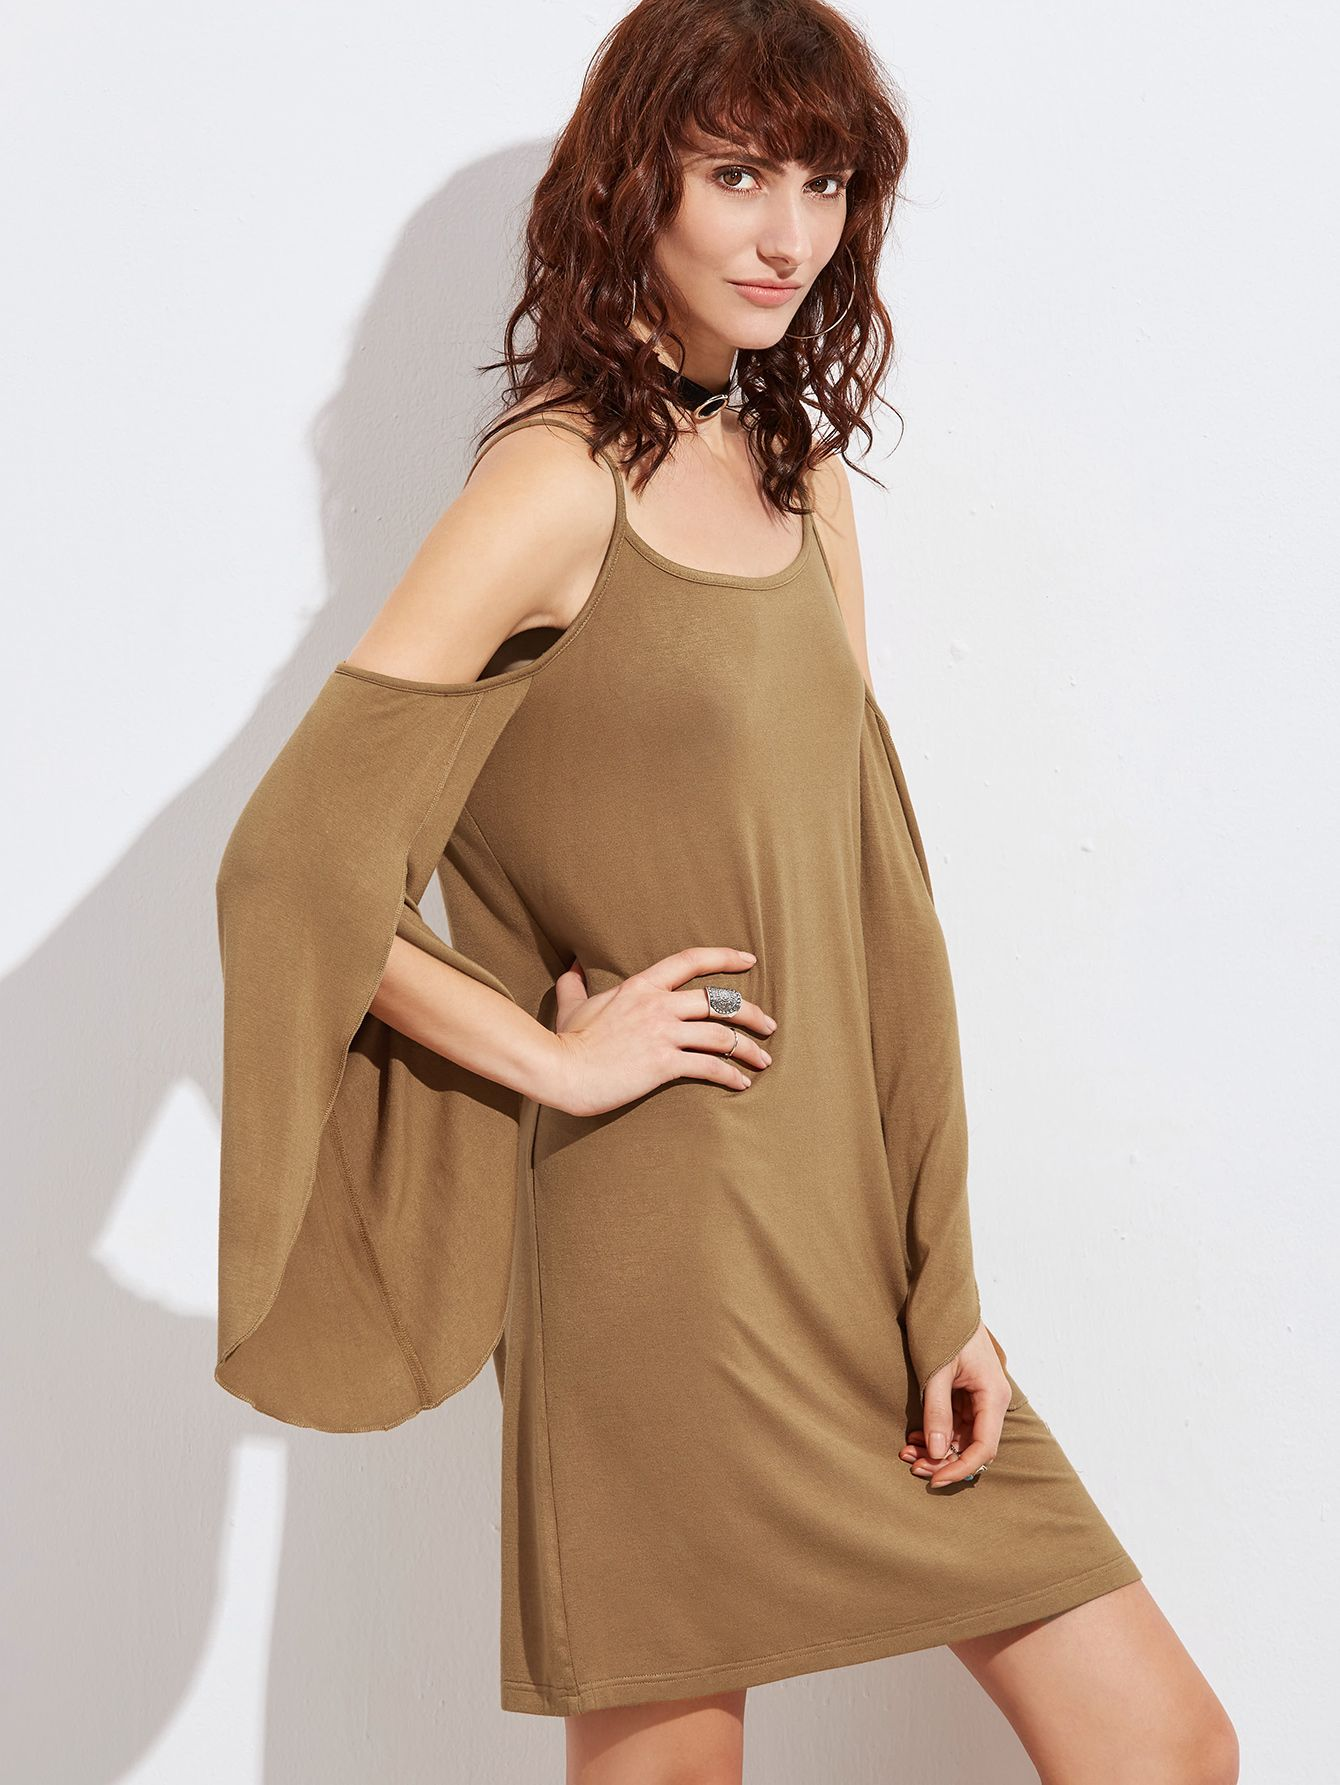 Buy it now. Camel Cold Shoulder Split Sleeve Dress. Camel Casual Rayon Cold Shoulder Long Sleeve Shift Short Plain Fabric is very stretchy Spring Tshirt Dresses. , vestidoinformal, casual, camiseta, playeros, informales, túnica, estilocamiseta, camisola, vestidodealgodón, vestidosdealgodón, verano, informal, playa, playero, capa, capas, vestidobabydoll, camisole, túnica, shift, pleat, pleated, drape, t-shape, daisy, foldedshoulder, summer, loosefit, tunictop, swing, day, offtheshoulder, s...